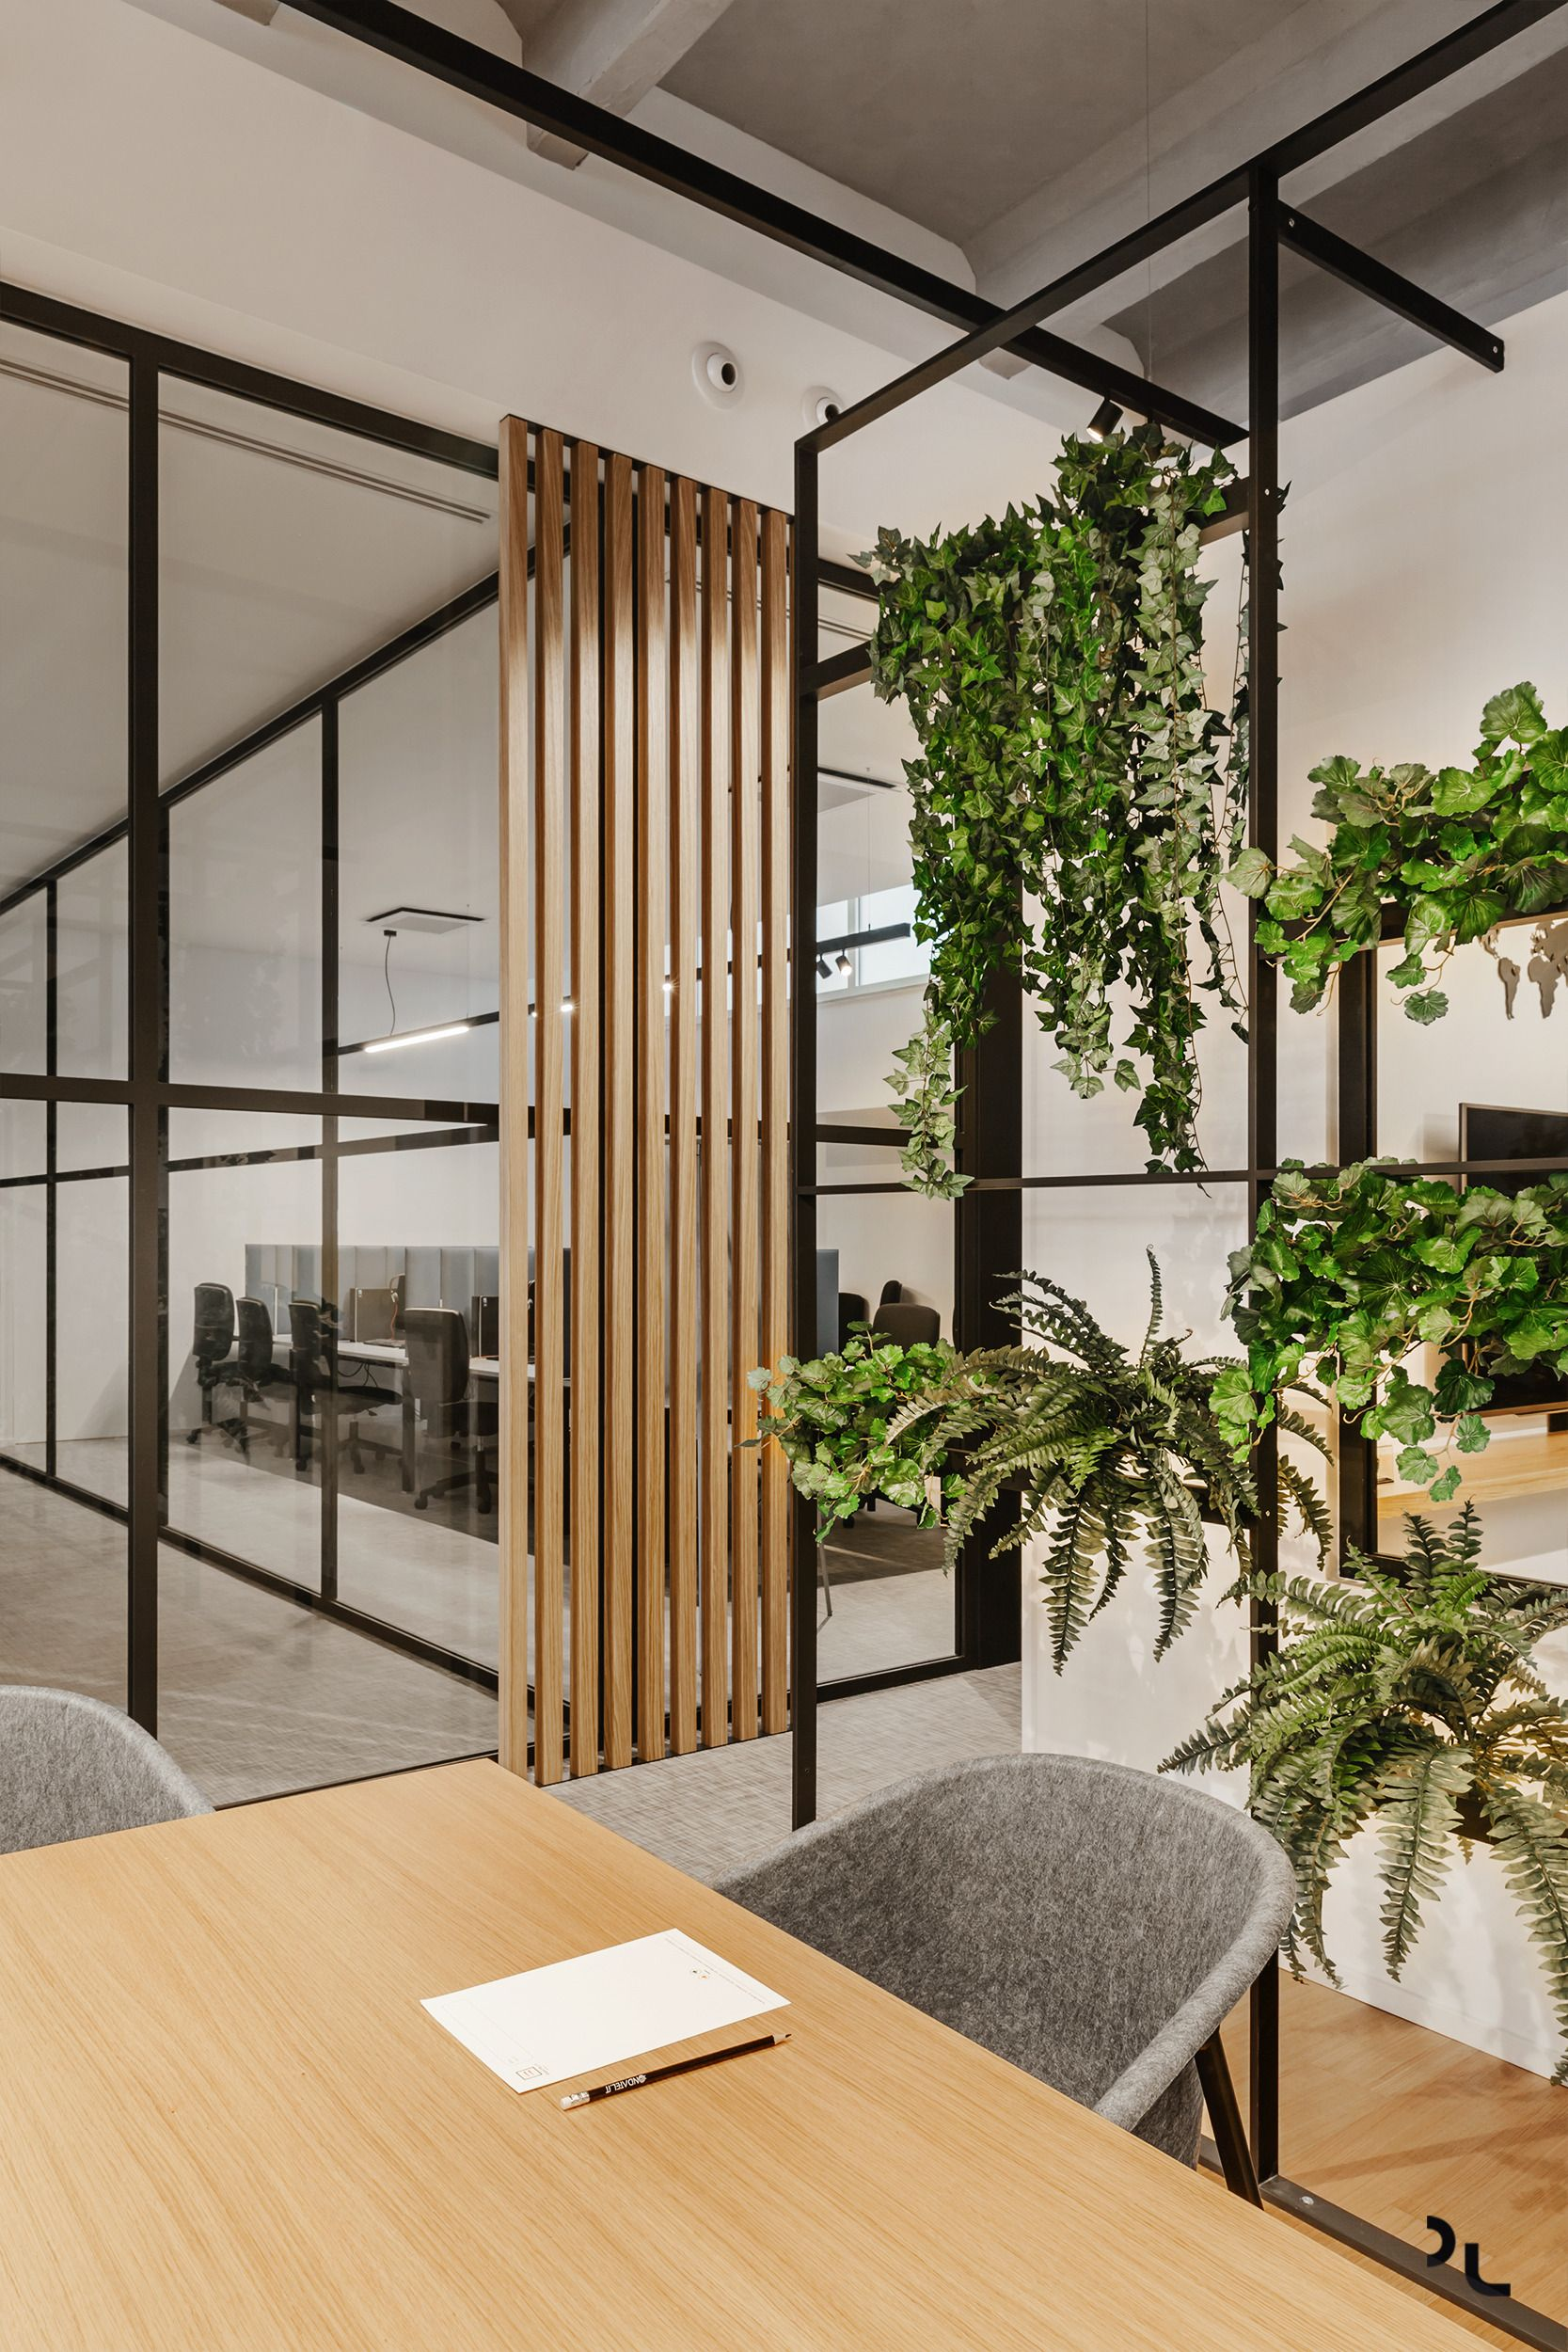 Ondatel Picture Gallery Green Office Design Contemporary Office Design Interior Design Office Space